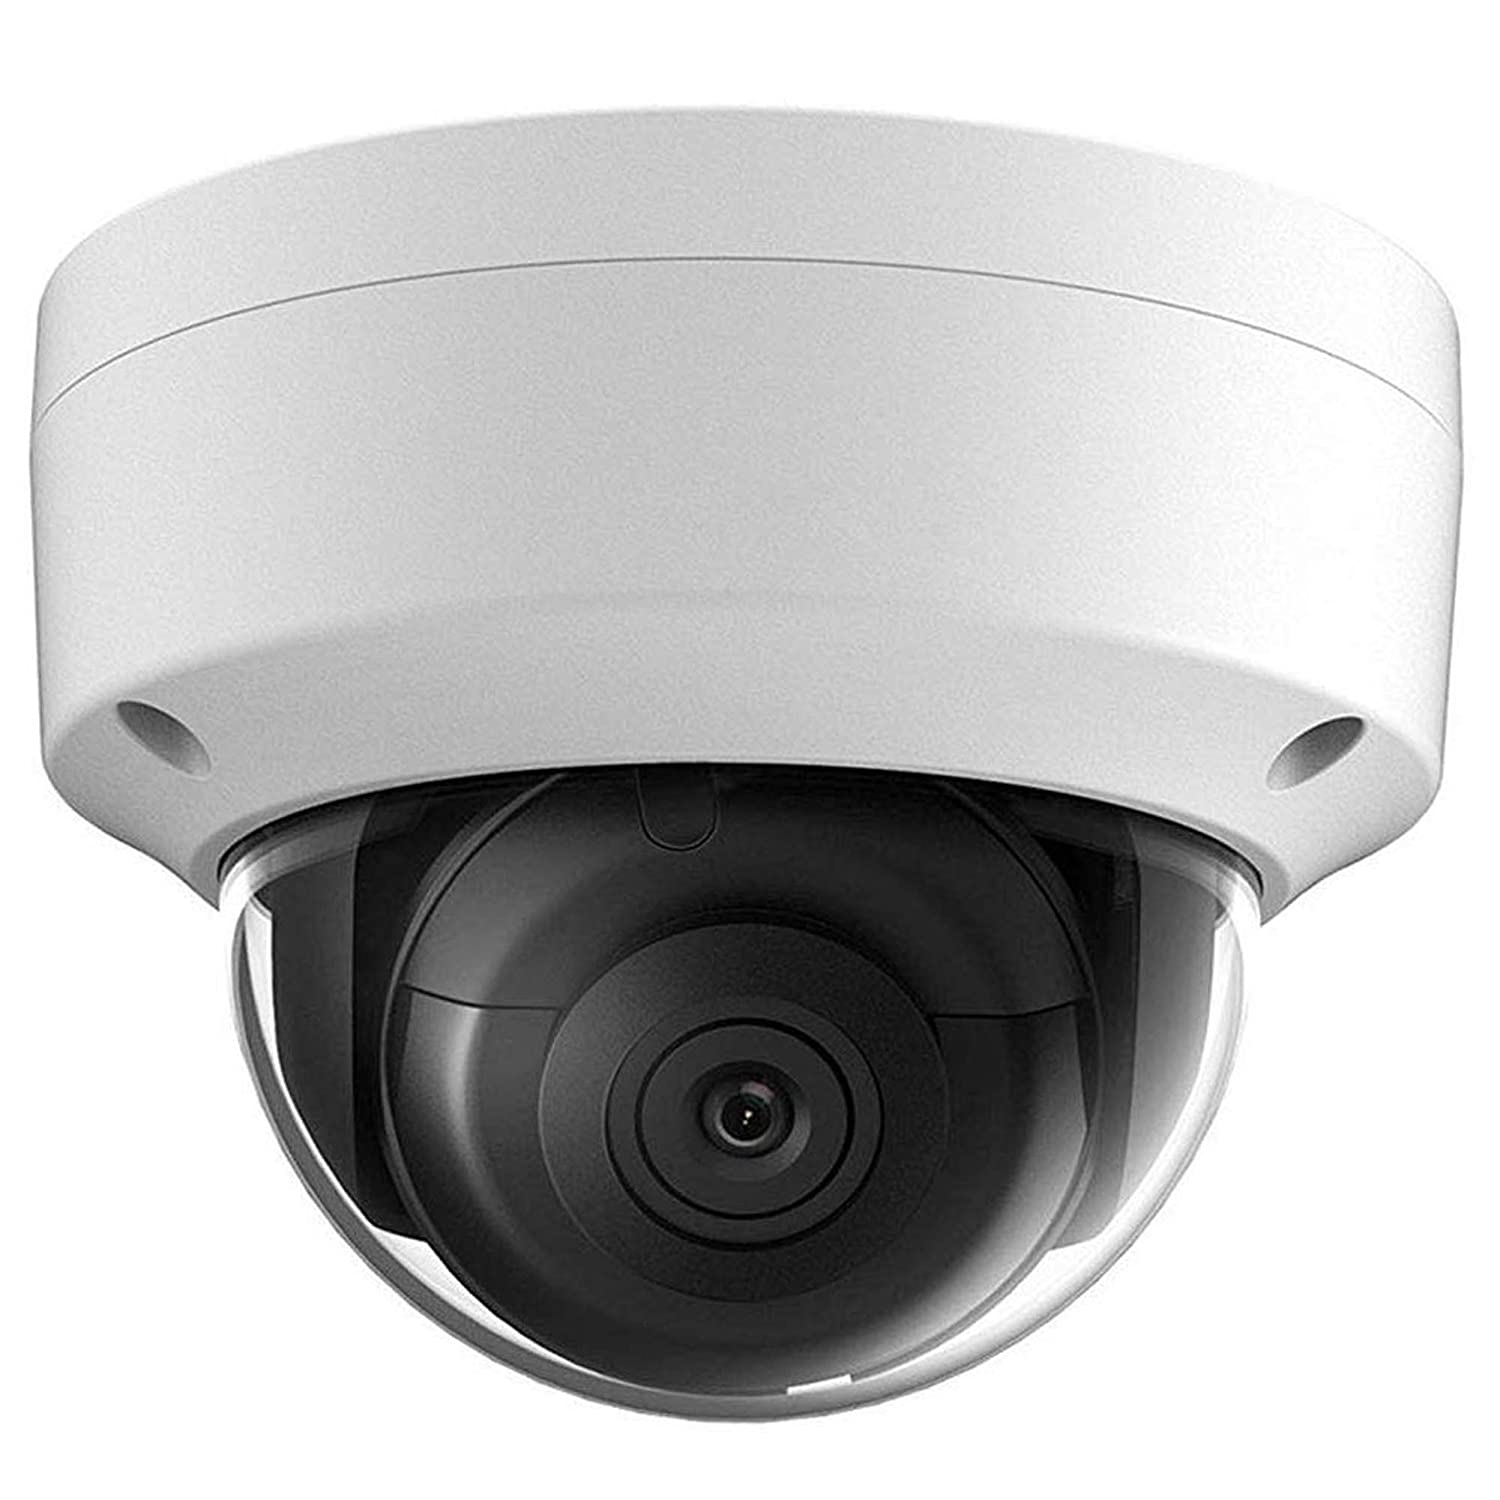 Outdoor 6MP PoE IP Camera Dome,Fixed Lens 2.8mm,Night Vision 98ft,Resolution 3072 x 2048,Smart Detection,True WDR,IP67 Weatherproof,IK10,HD Home Security Network Camera OEM DS-2CD2163G0-I